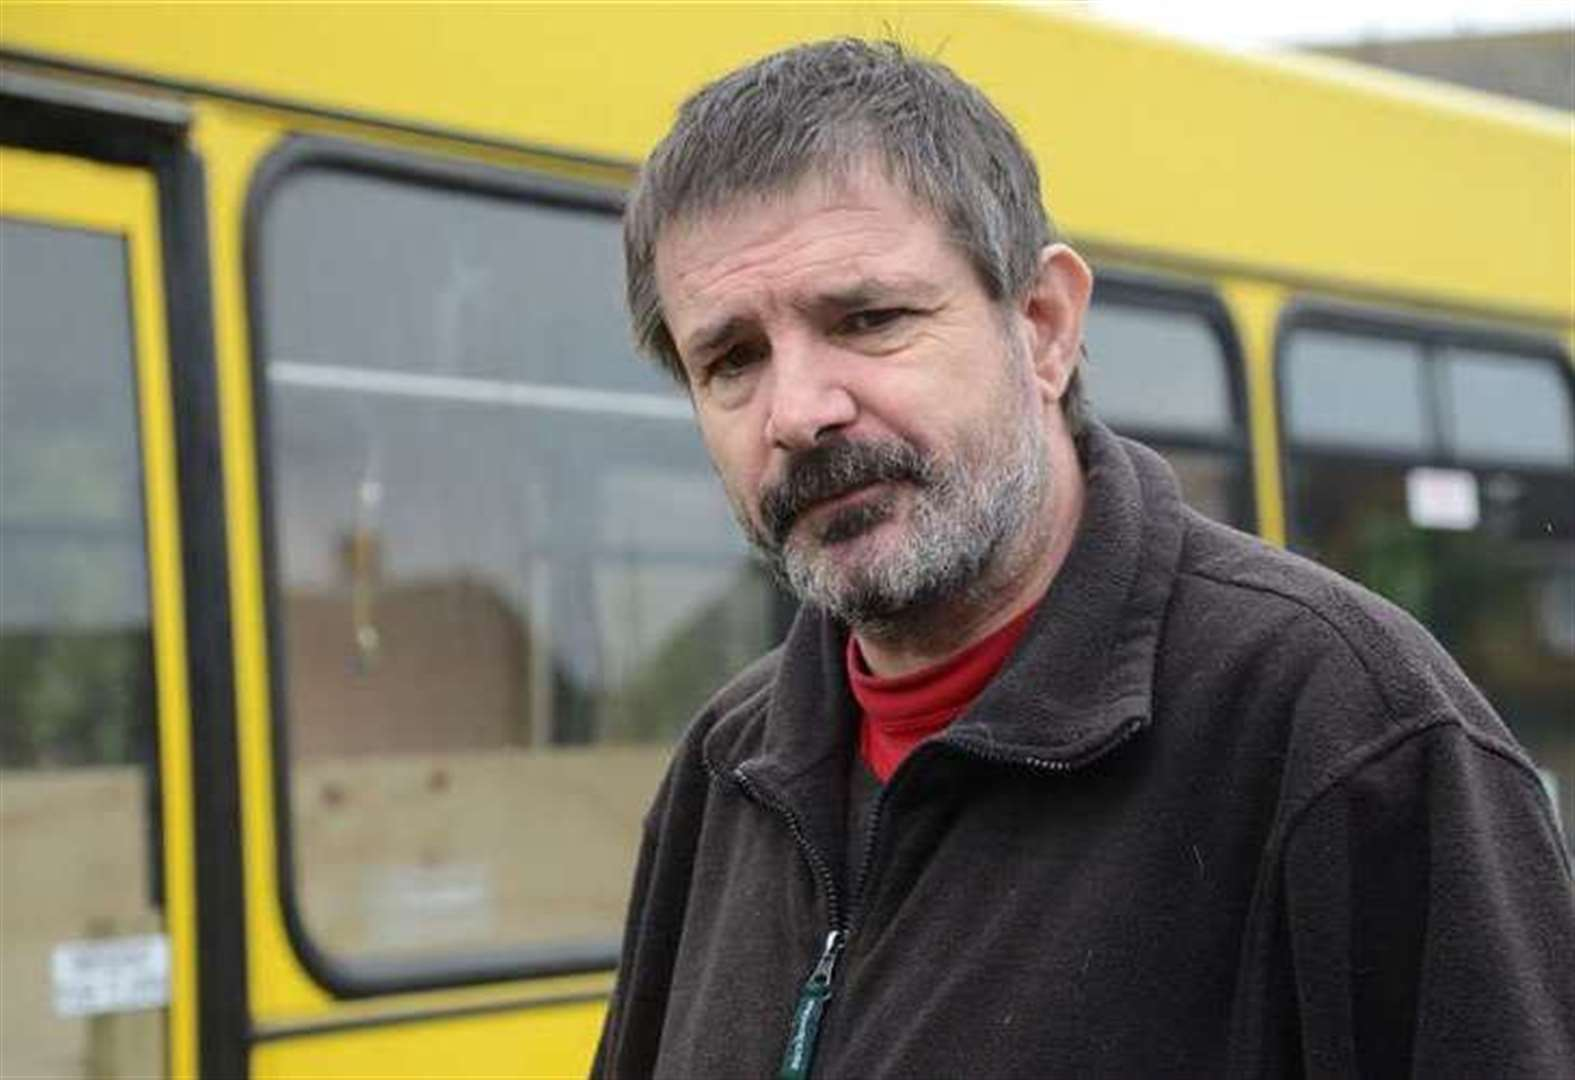 Homeless shelter bus forced to close